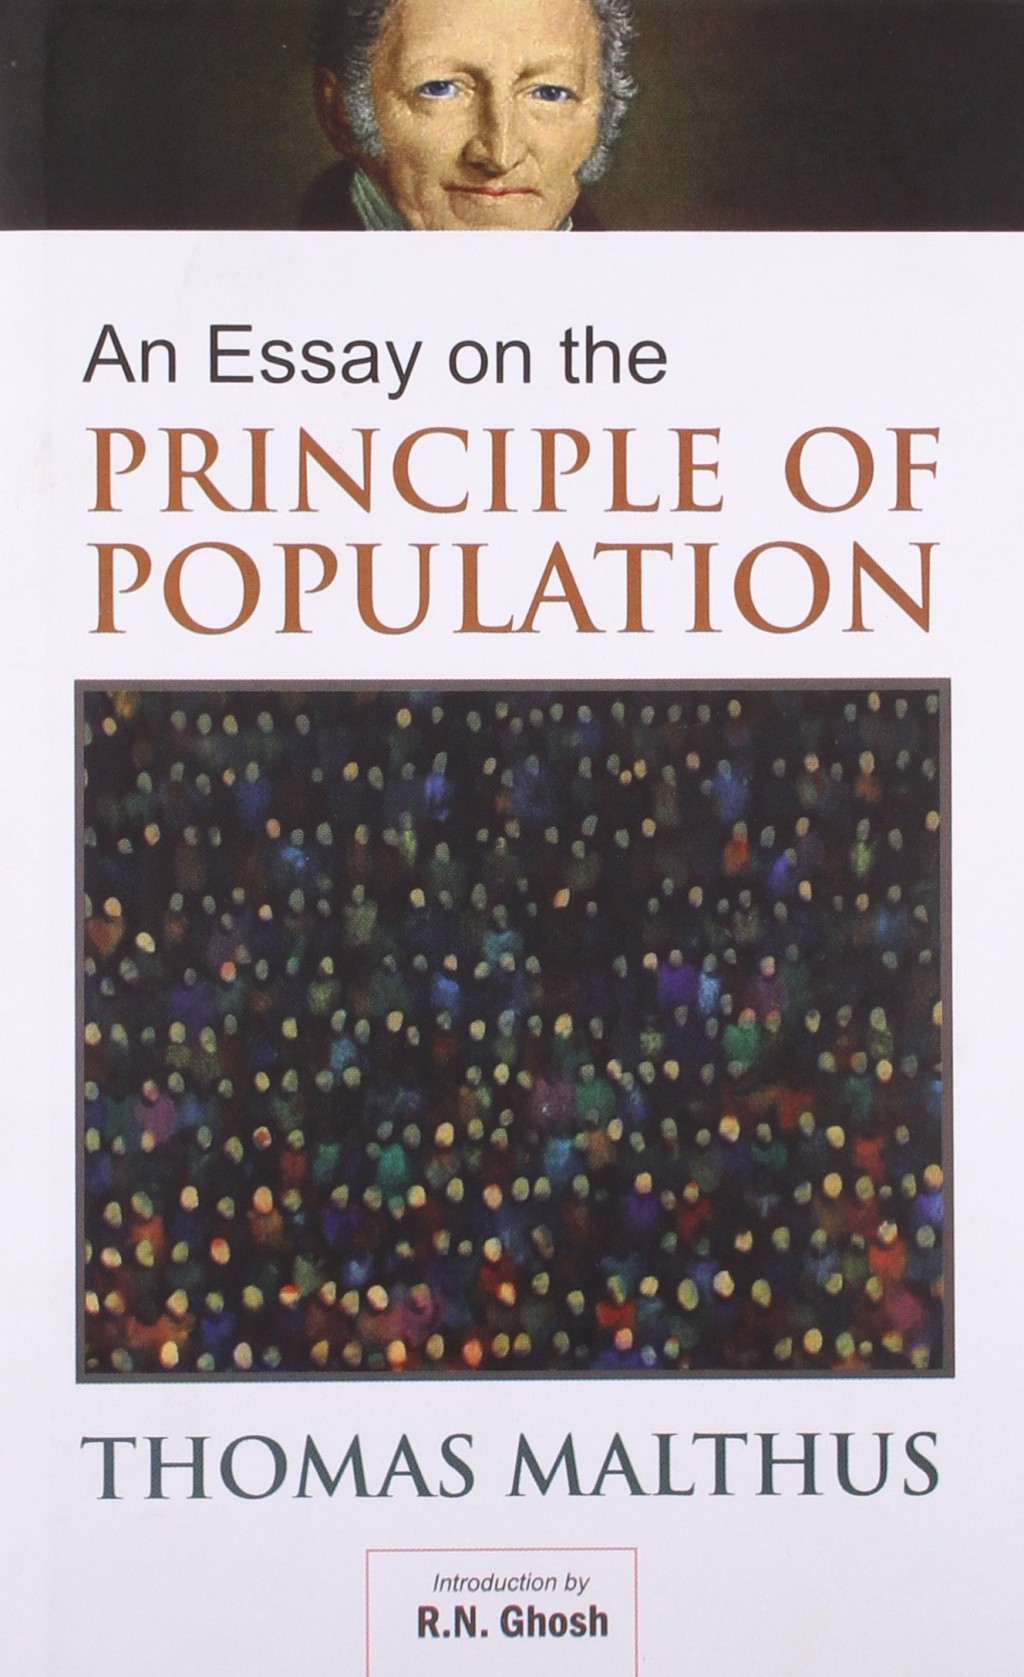 011 8162bfm1ycfl Essay Example Thomas Malthus An On The Principle Of Marvelous Population Summary Analysis Argued In His (1798) That Large